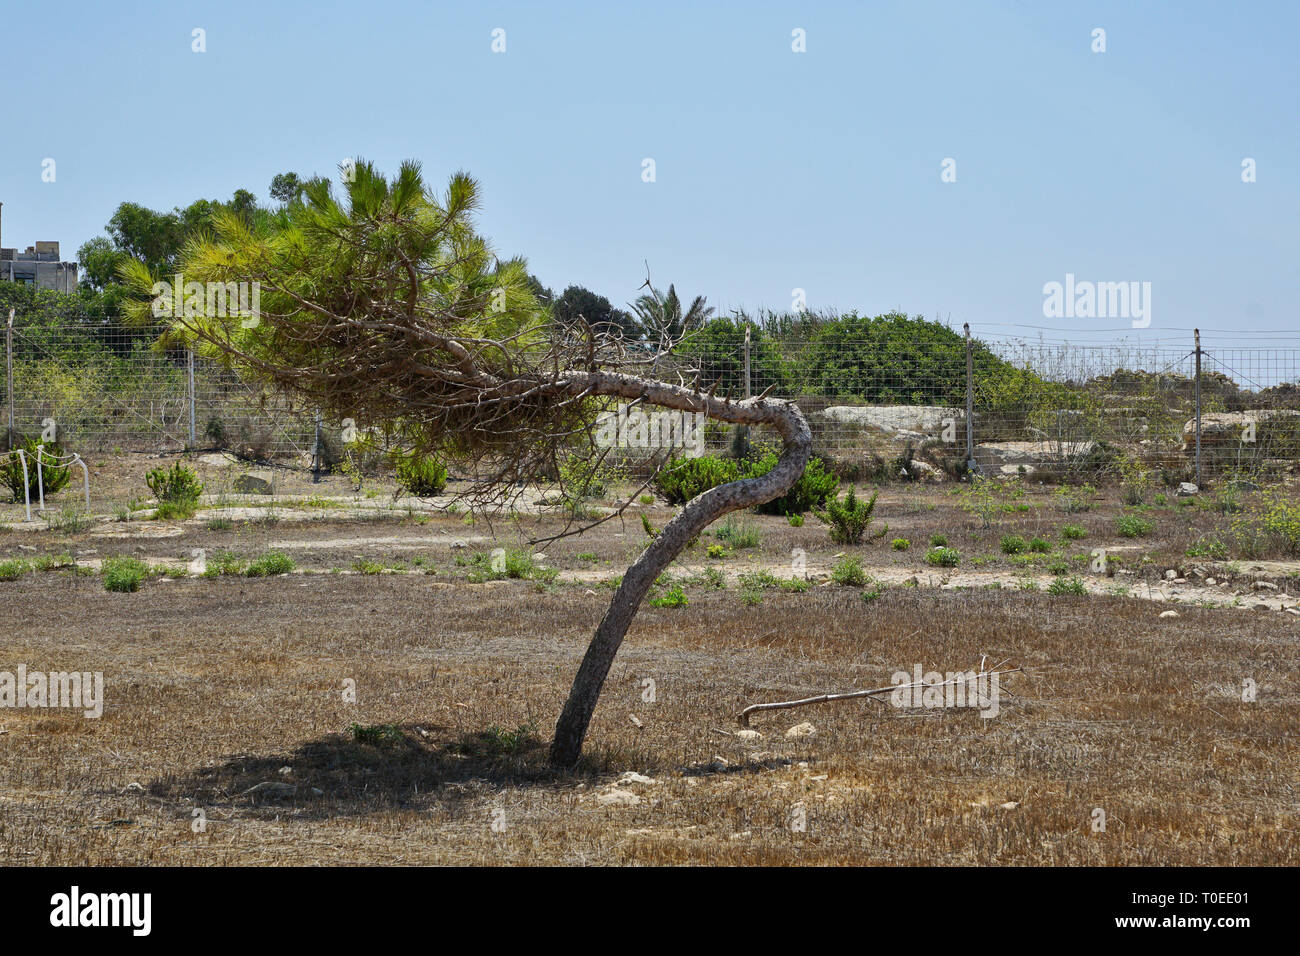 extremely wind-deformed tree - Stock Image